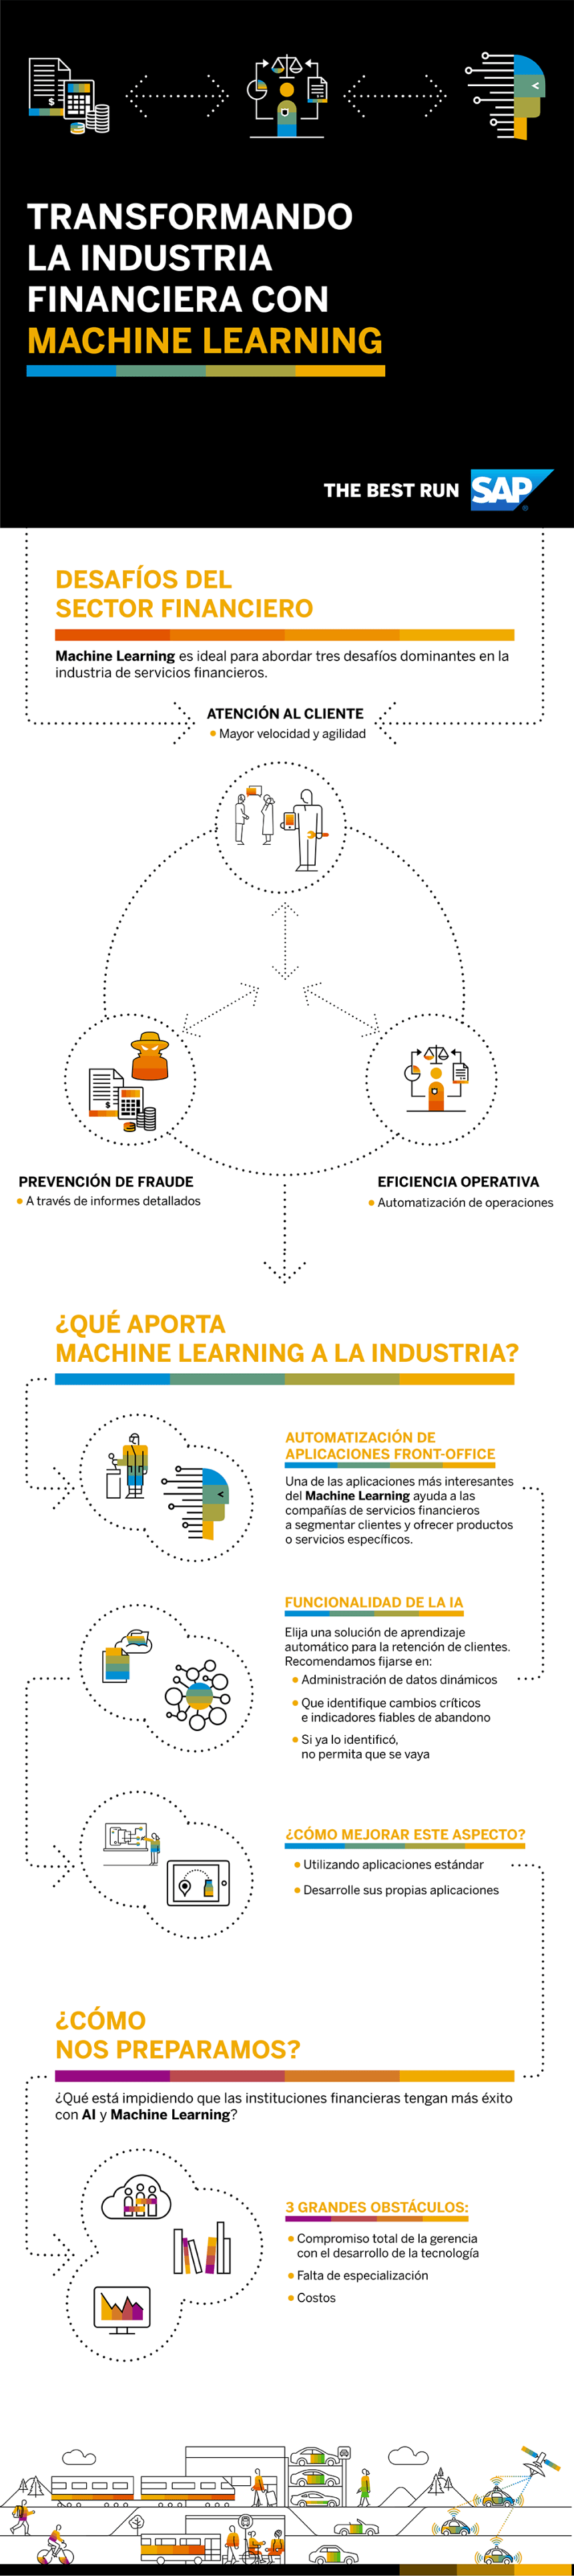 Machine Learning en la industria financiera